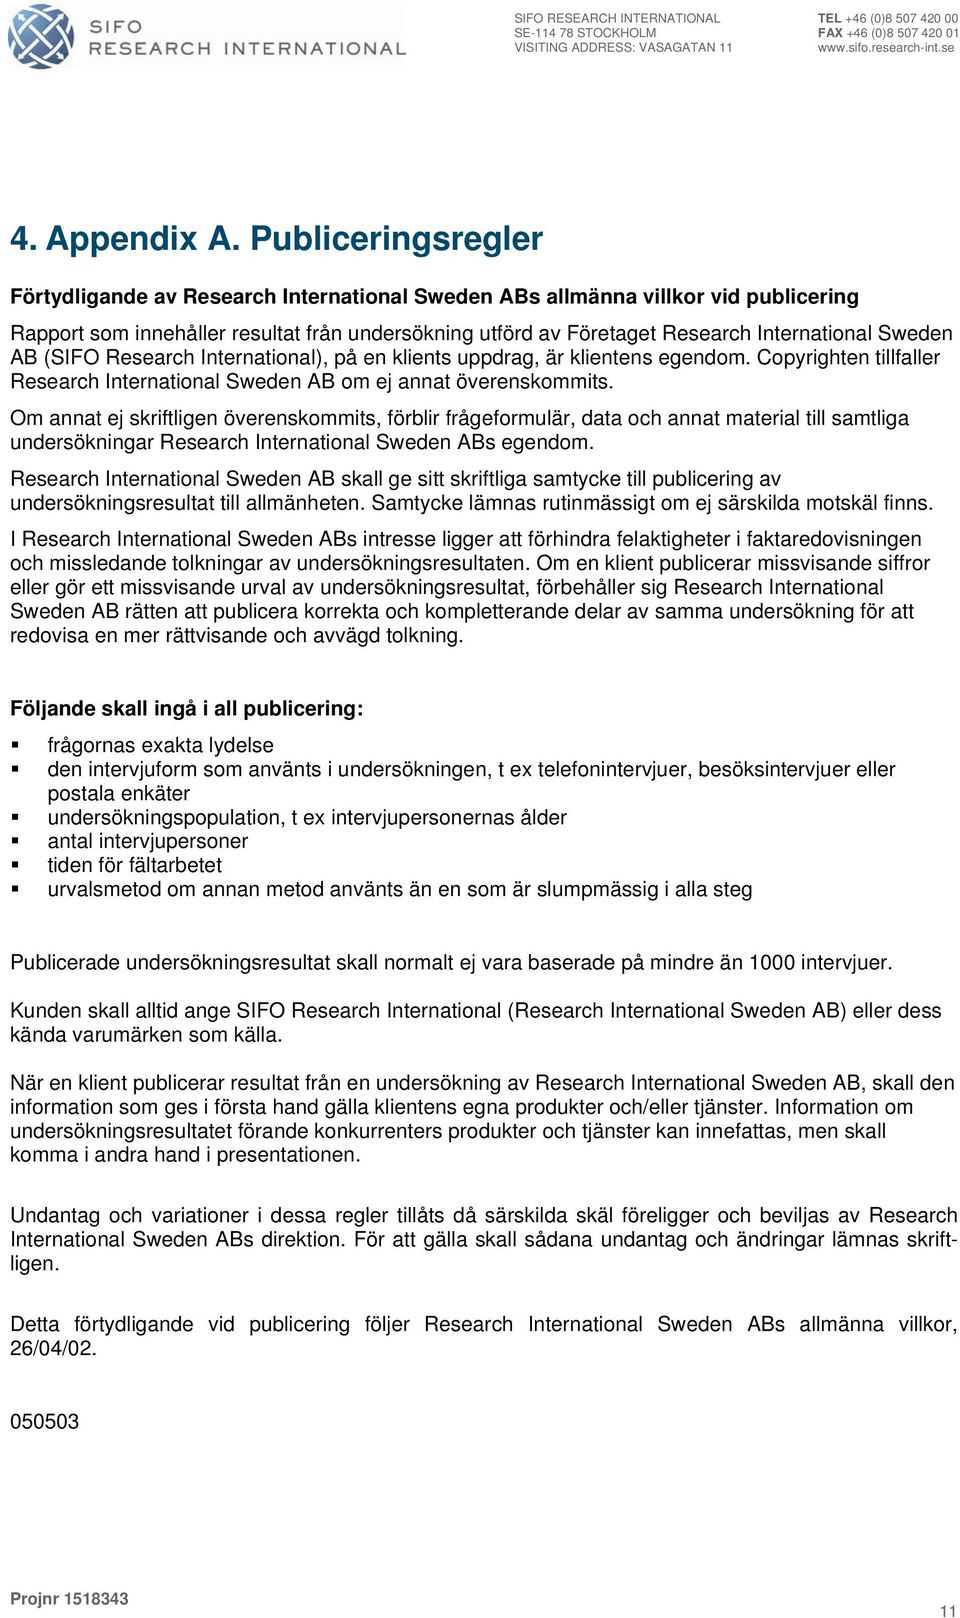 Sweden AB (SIFO Research International), på en klients uppdrag, är klientens egendom. Copyrighten tillfaller Research International Sweden AB om ej annat överenskommits.